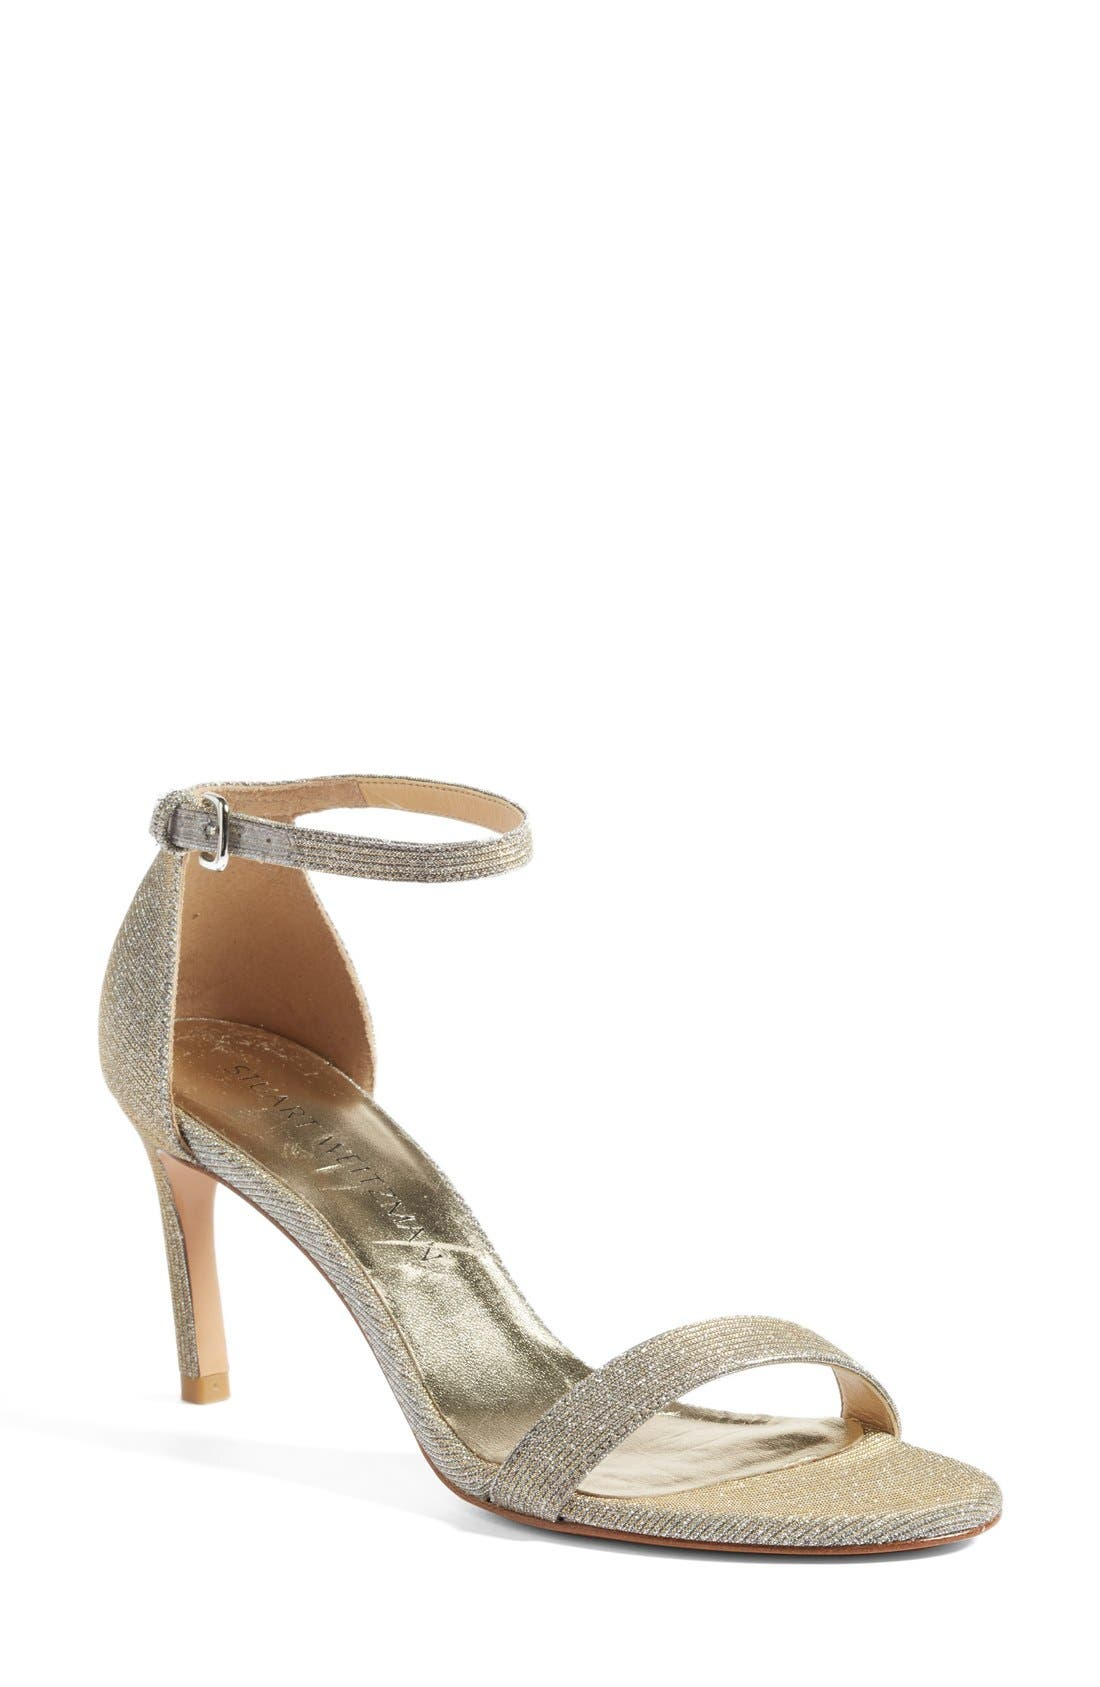 'Nunaked' Leather Ankle Strap Sandal,                             Main thumbnail 1, color,                             Magnesium Nocturn